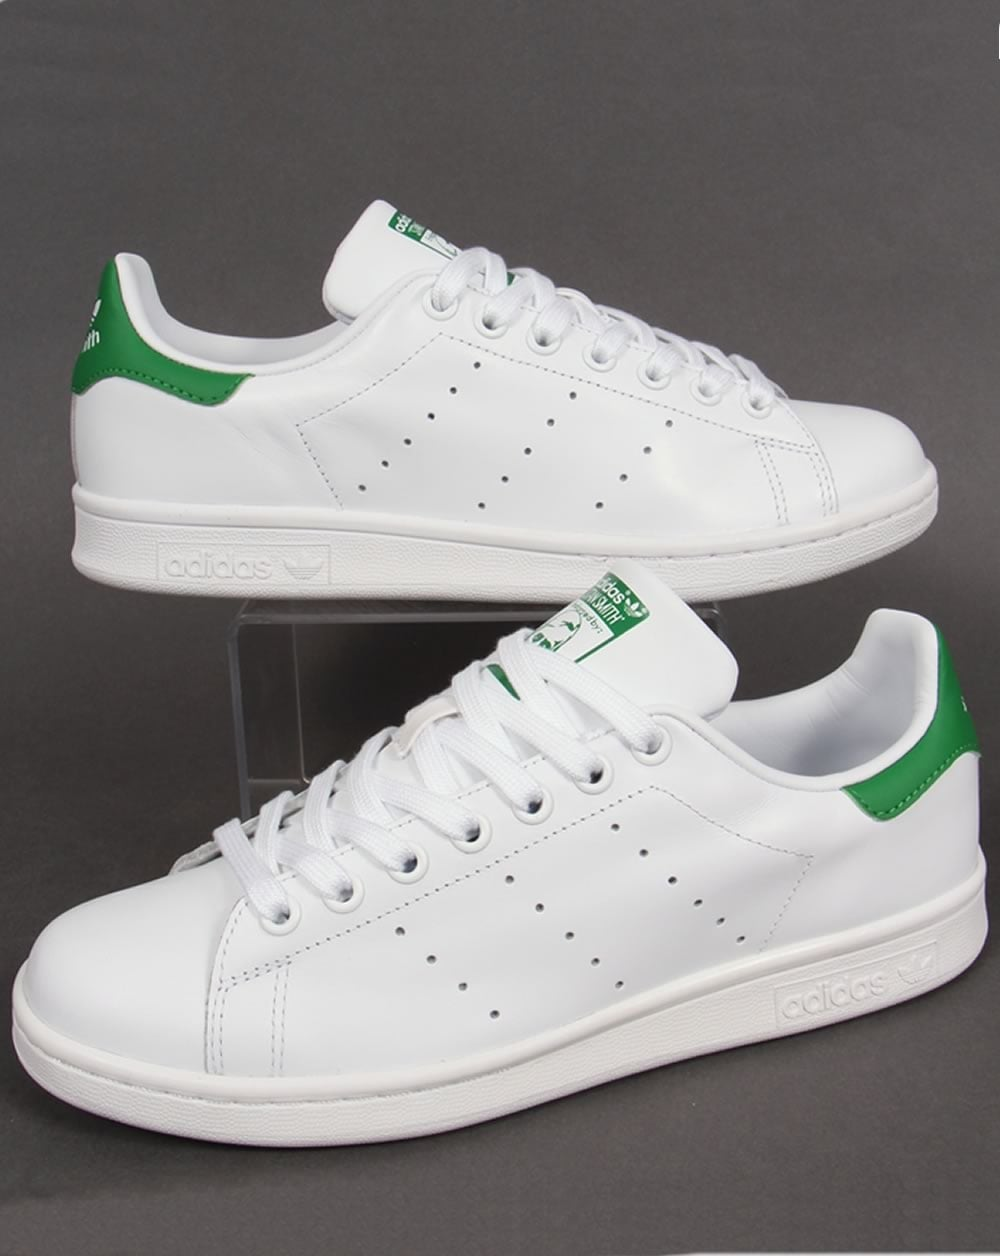 Adidas Stan Smith Trainers White/Green